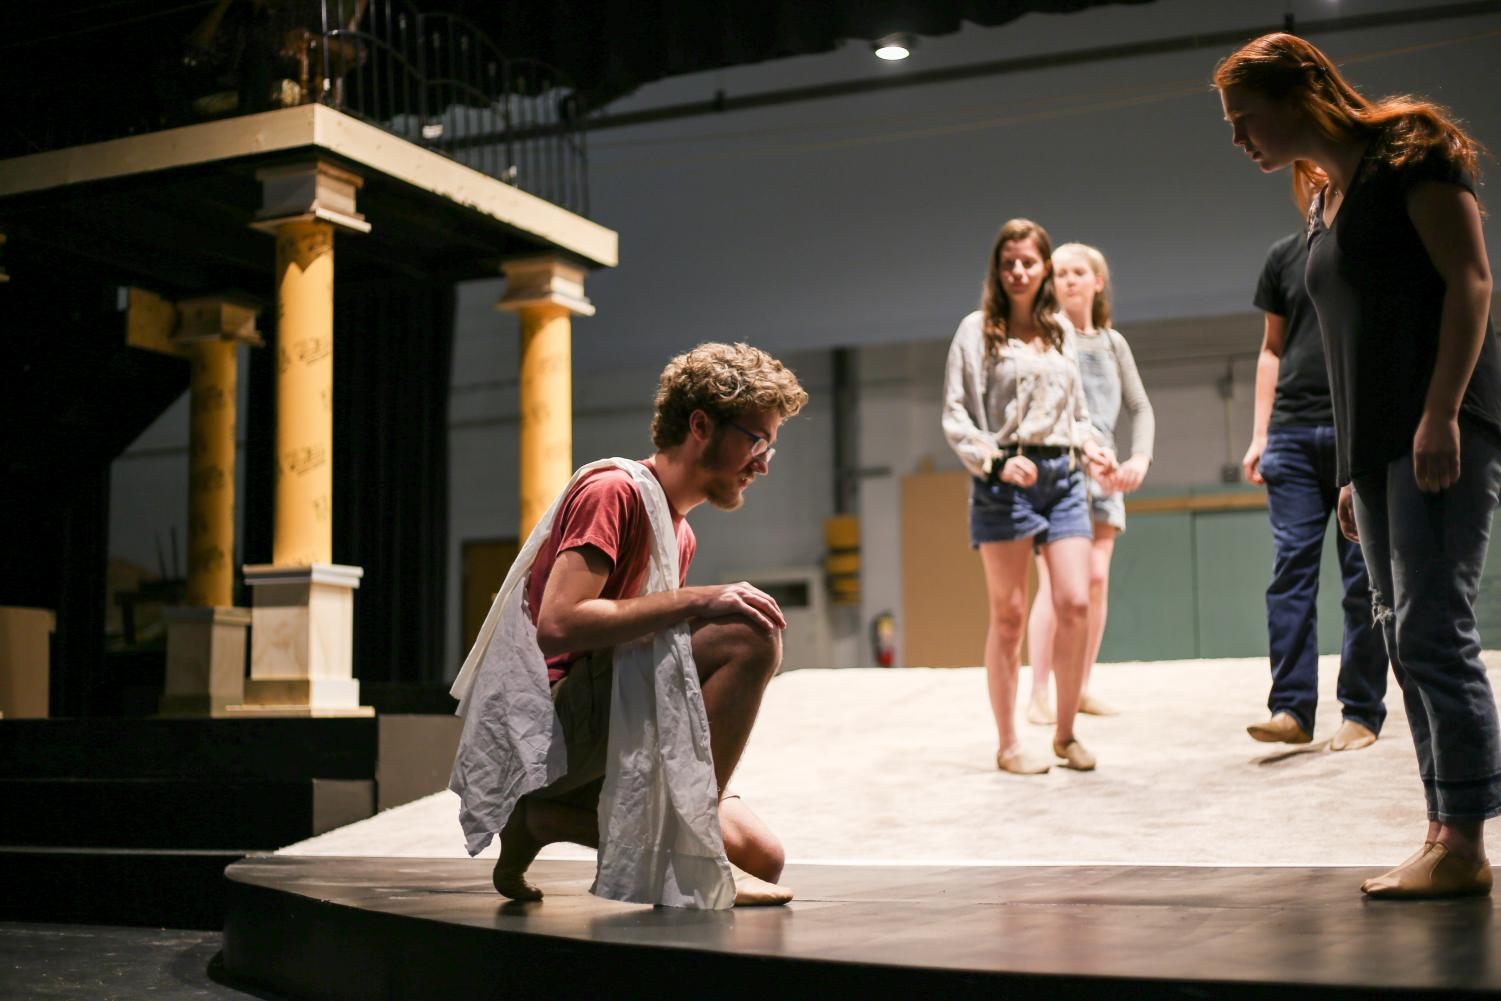 Seth Reynolds (Odysseus) kneels before Becca Siegel (queen of Phaeacia) during rehearsal for Bearden's production of The Odyssey.